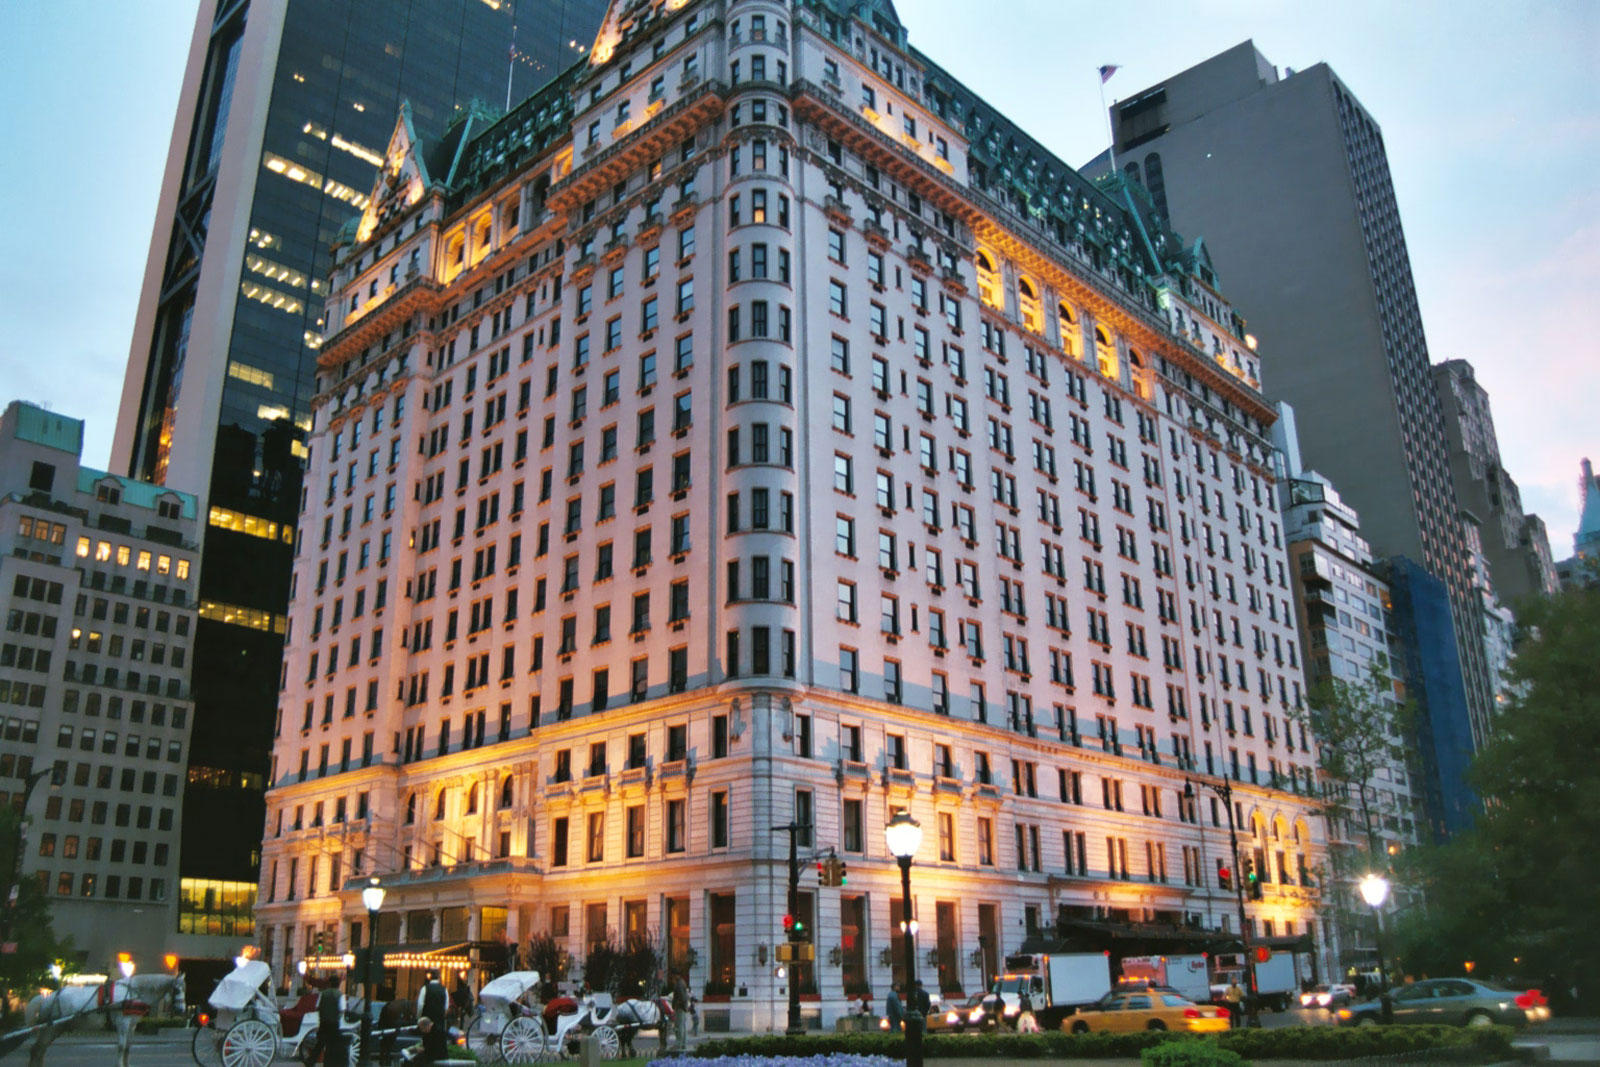 Plaza hotel new york ny phbcatalyst group inc for New york city penthouses central park